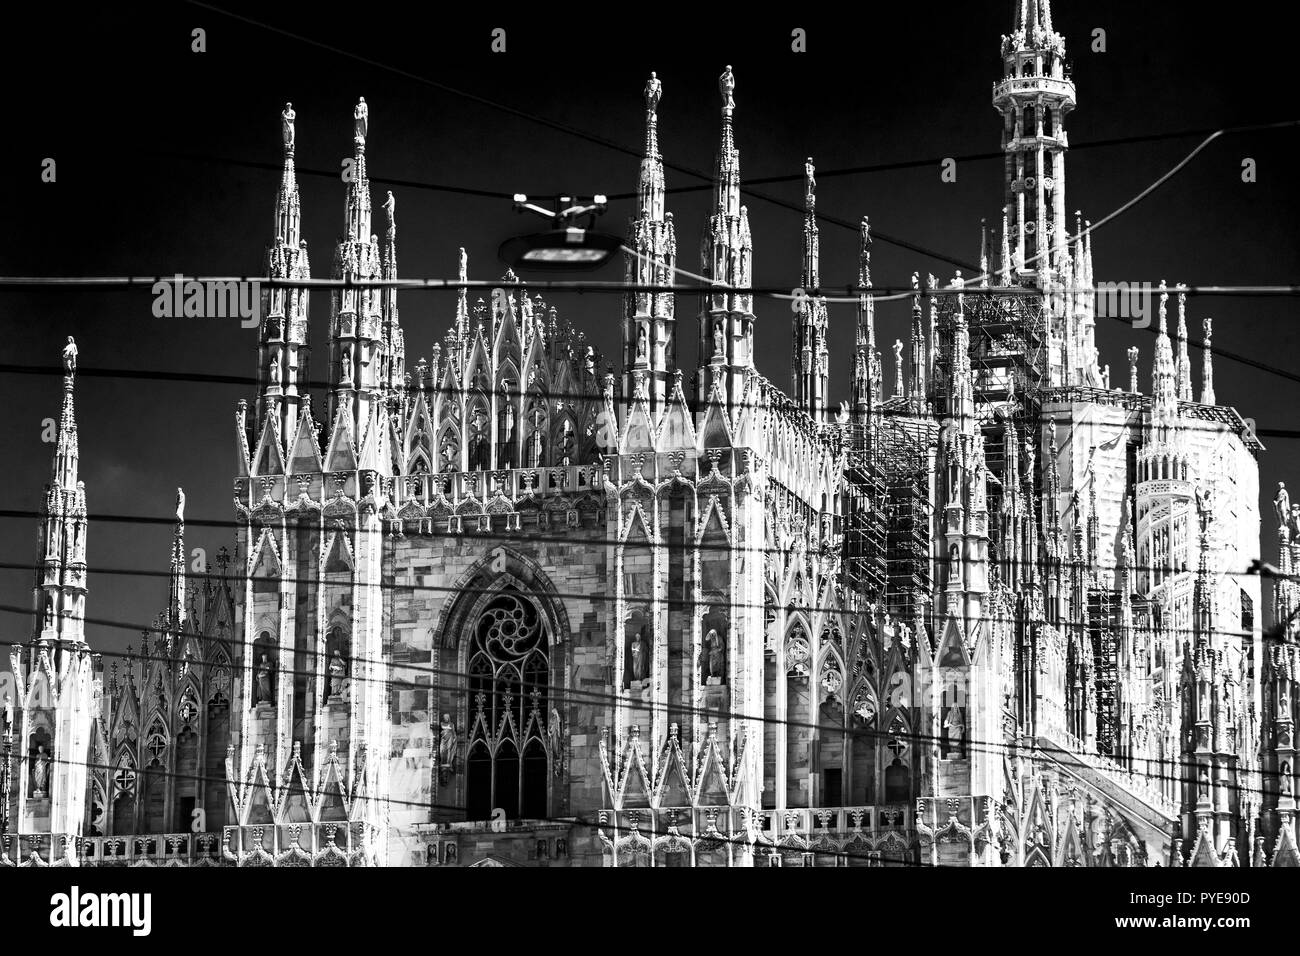 6 JUNE 2018, MILAN, ITALY: Black and White images of a religious building landmark of the Cathedral of Milan (Duomo di Milano) - Stock Image